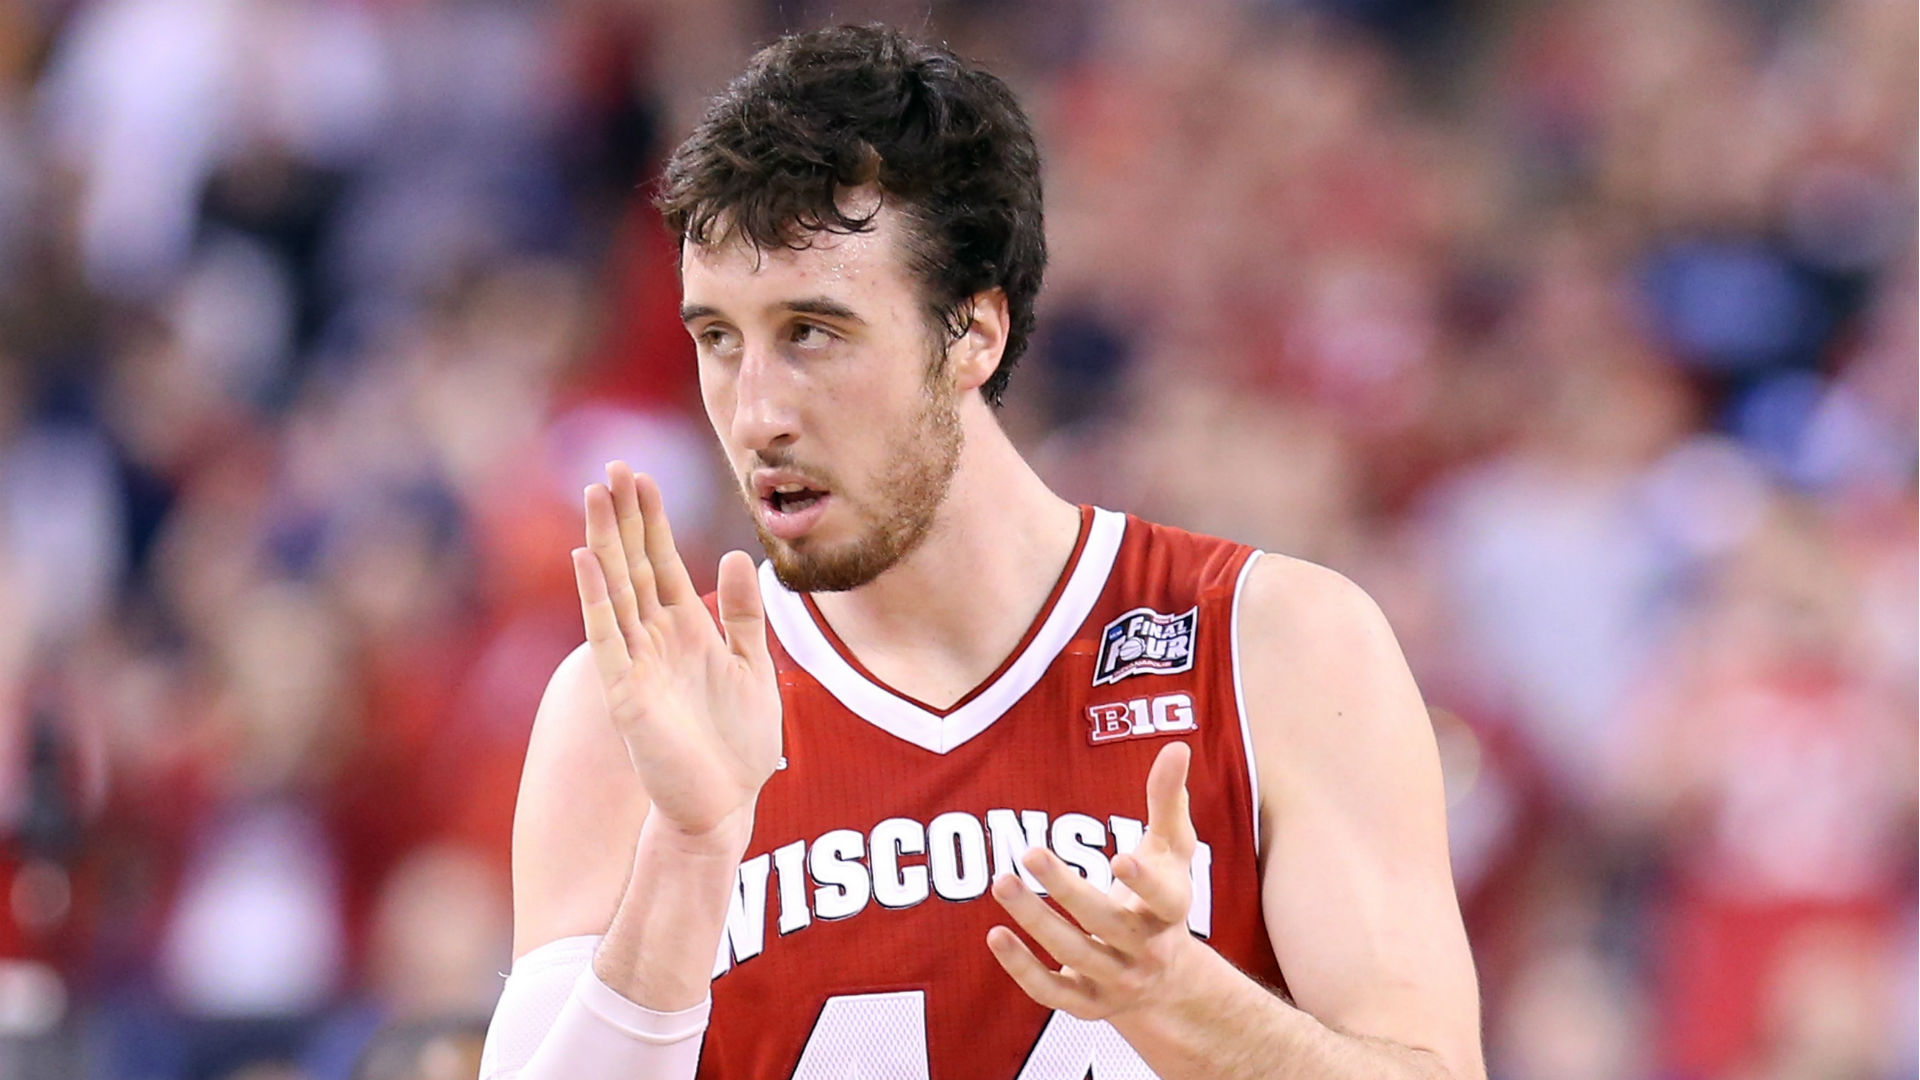 Frank Kaminsky pens emotional letter reflecting on time at Wisconsin